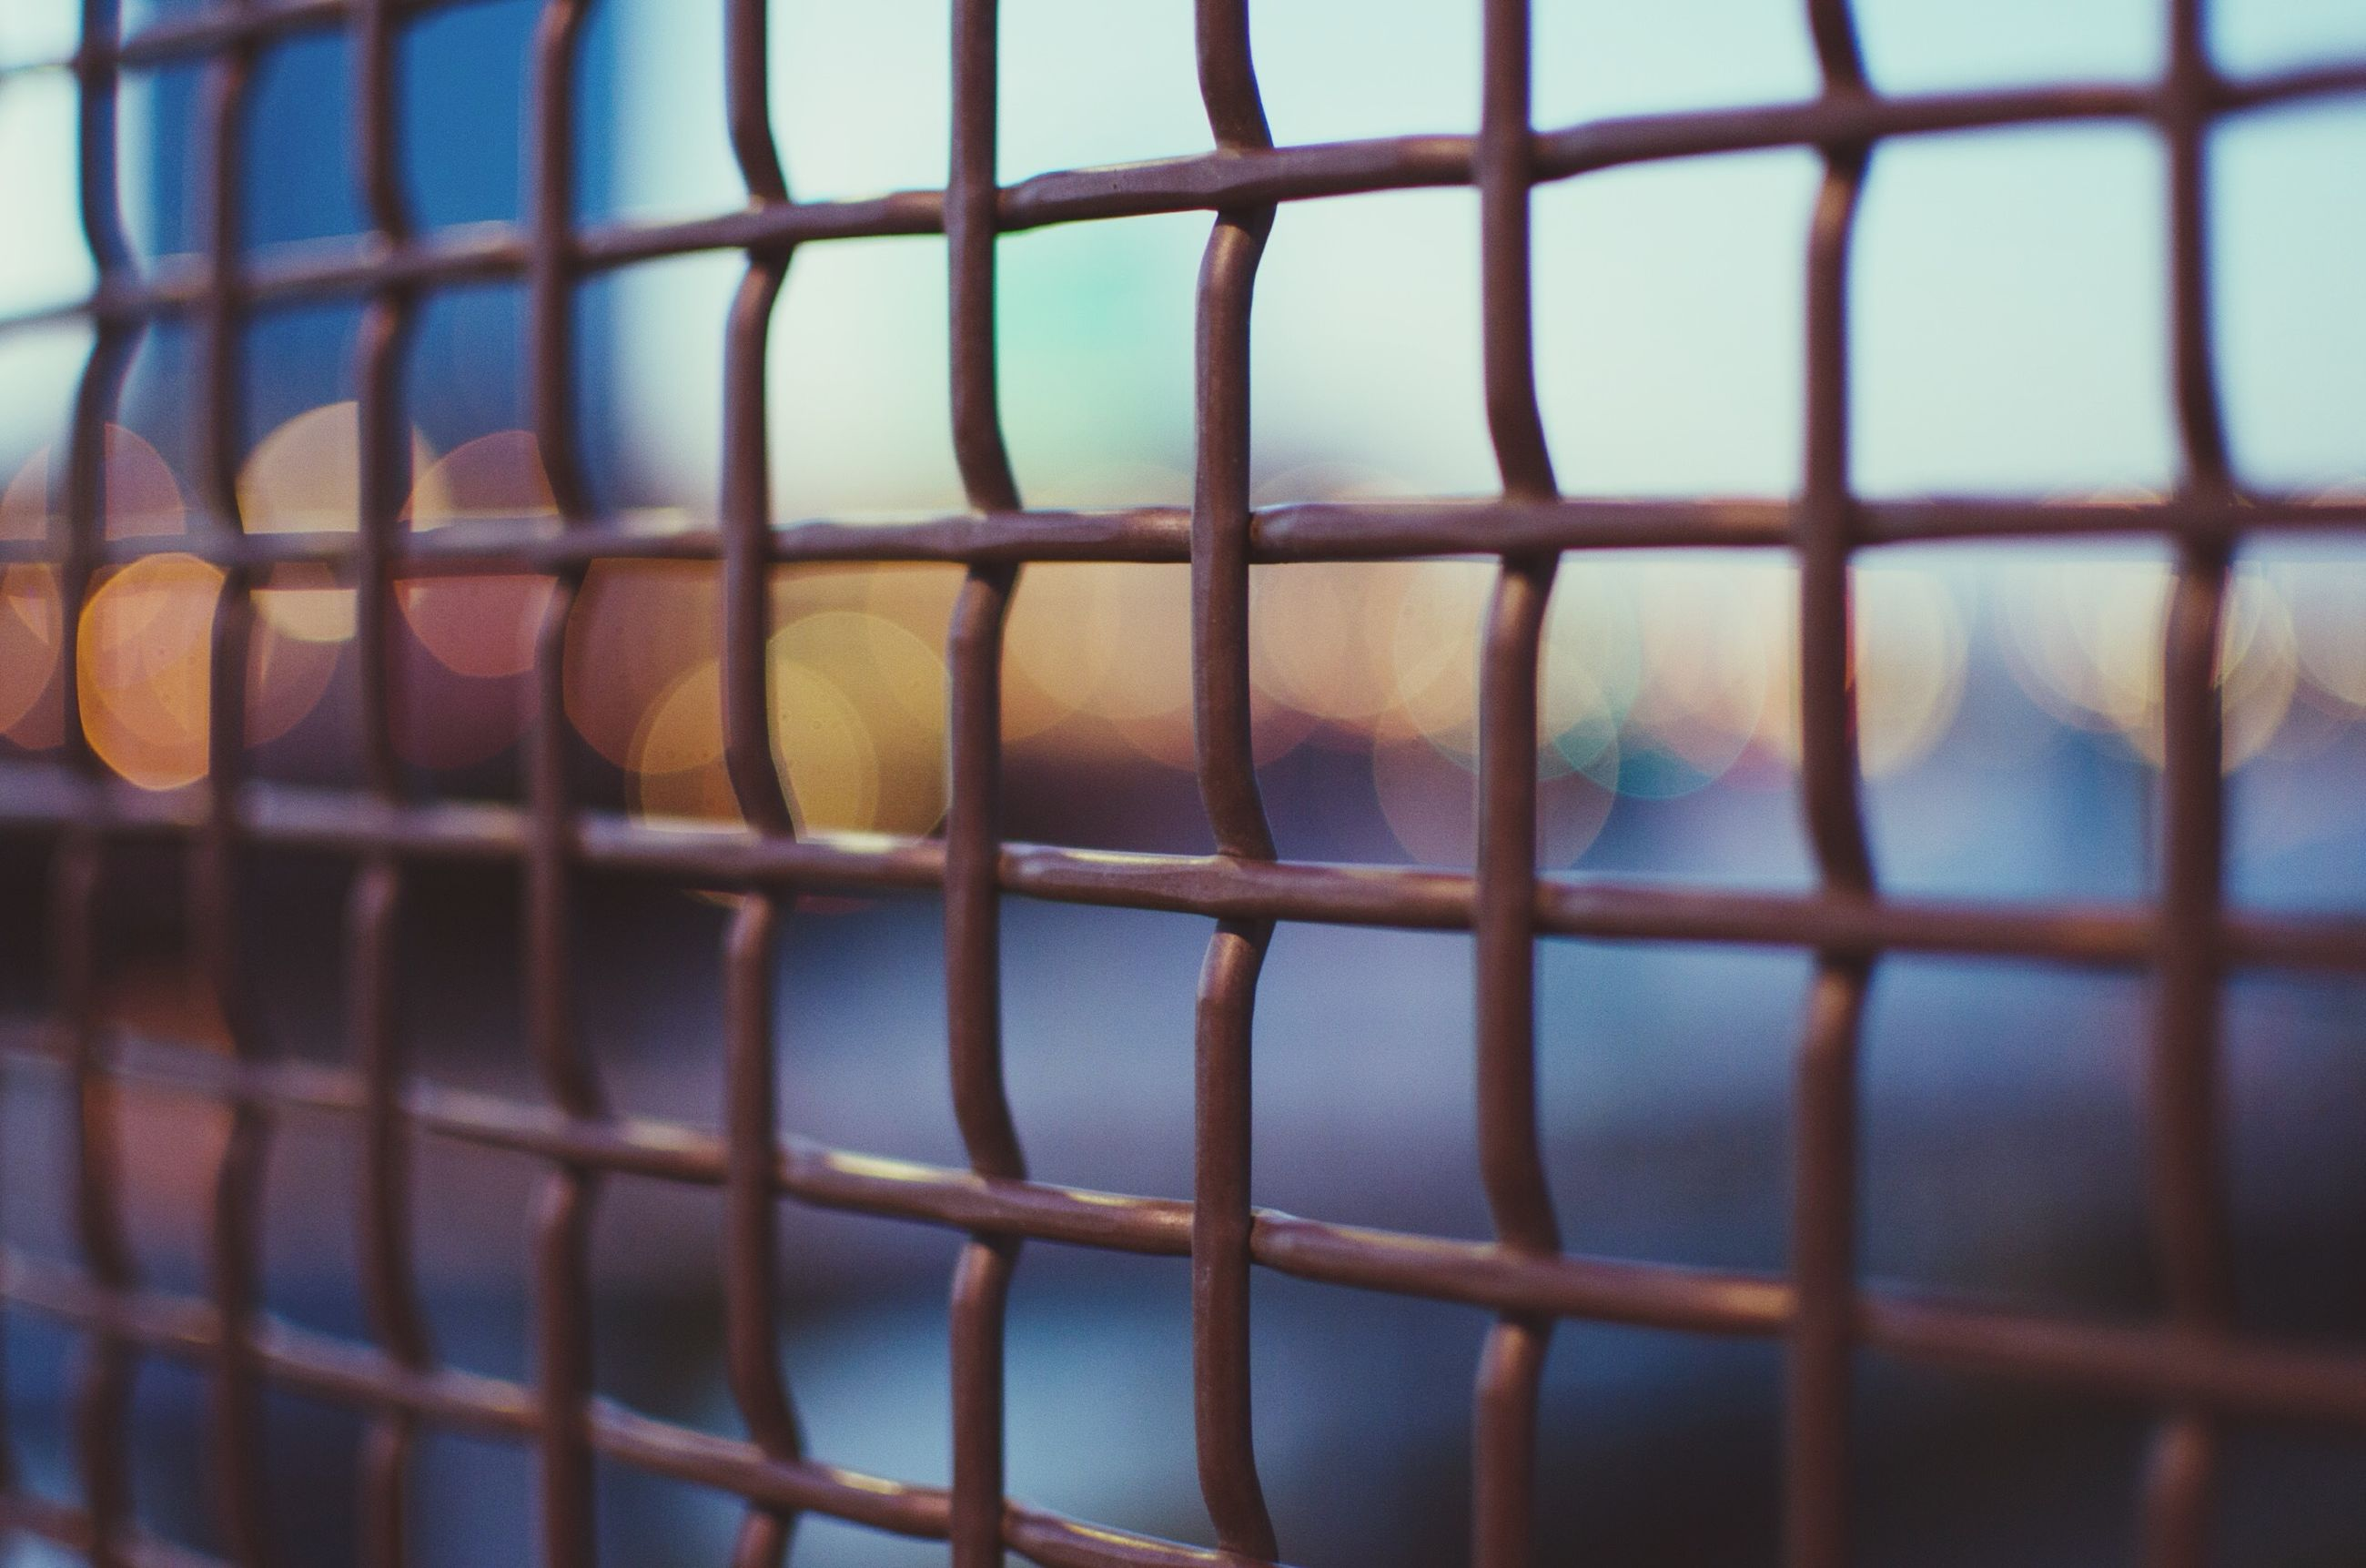 full frame, backgrounds, pattern, architecture, built structure, indoors, window, metal, building exterior, metal grate, glass - material, geometric shape, fence, design, modern, focus on foreground, close-up, repetition, no people, day